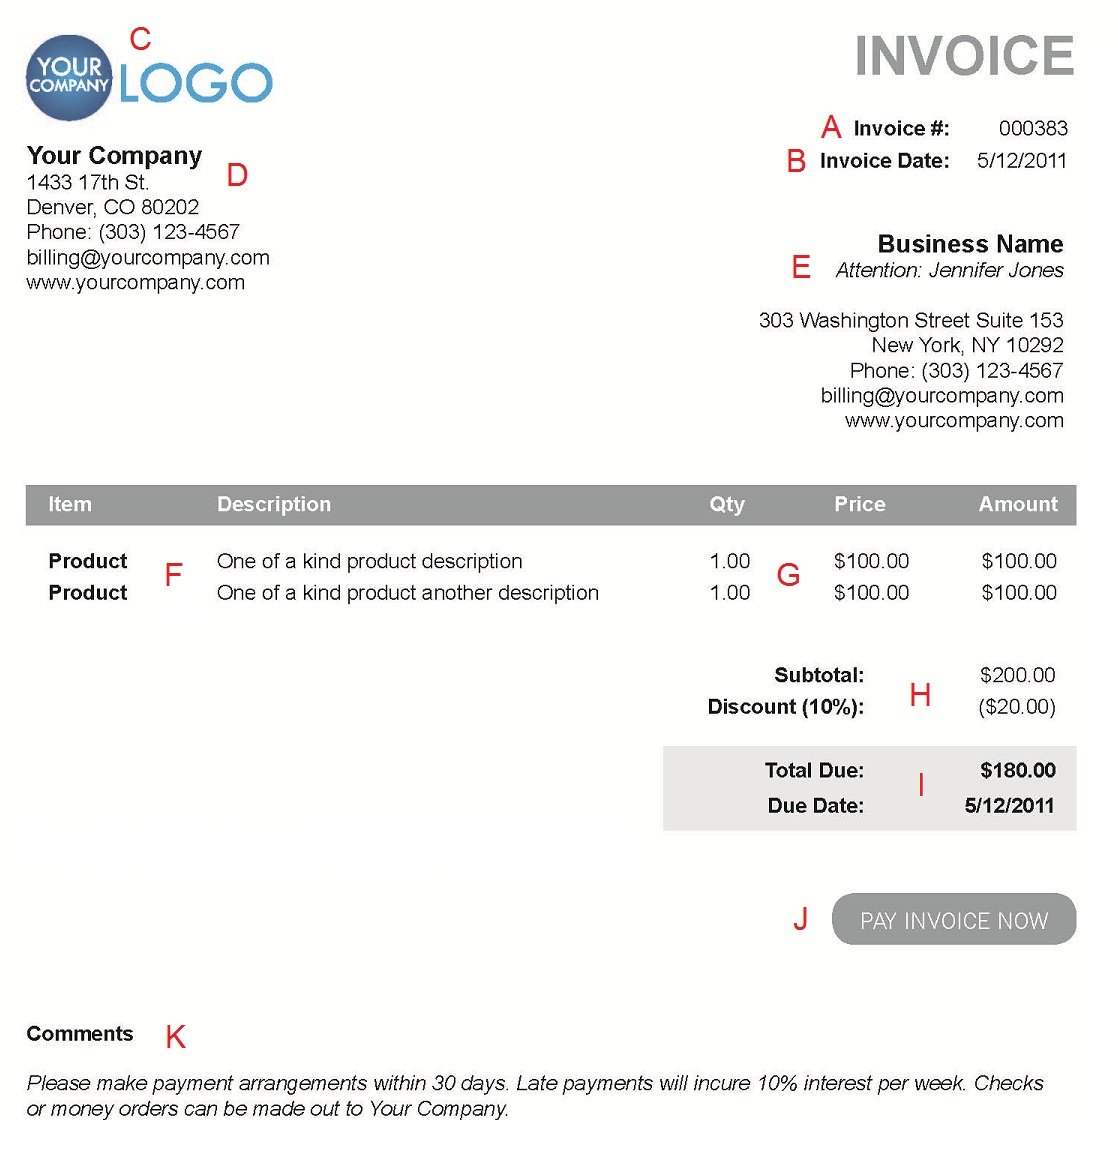 Helpingtohealus  Wonderful The  Different Sections Of An Electronic Payment Invoice With Goodlooking A  With Beauteous Dental Invoice Sample Also Blank Invoice Uk In Addition Zoho Invoice Sign In And Cash Invoice Definition As Well As Carcostcanada Wholesale Invoice Price Report Additionally Invoice Formats In Word From Paysimplecom With Helpingtohealus  Goodlooking The  Different Sections Of An Electronic Payment Invoice With Beauteous A  And Wonderful Dental Invoice Sample Also Blank Invoice Uk In Addition Zoho Invoice Sign In From Paysimplecom